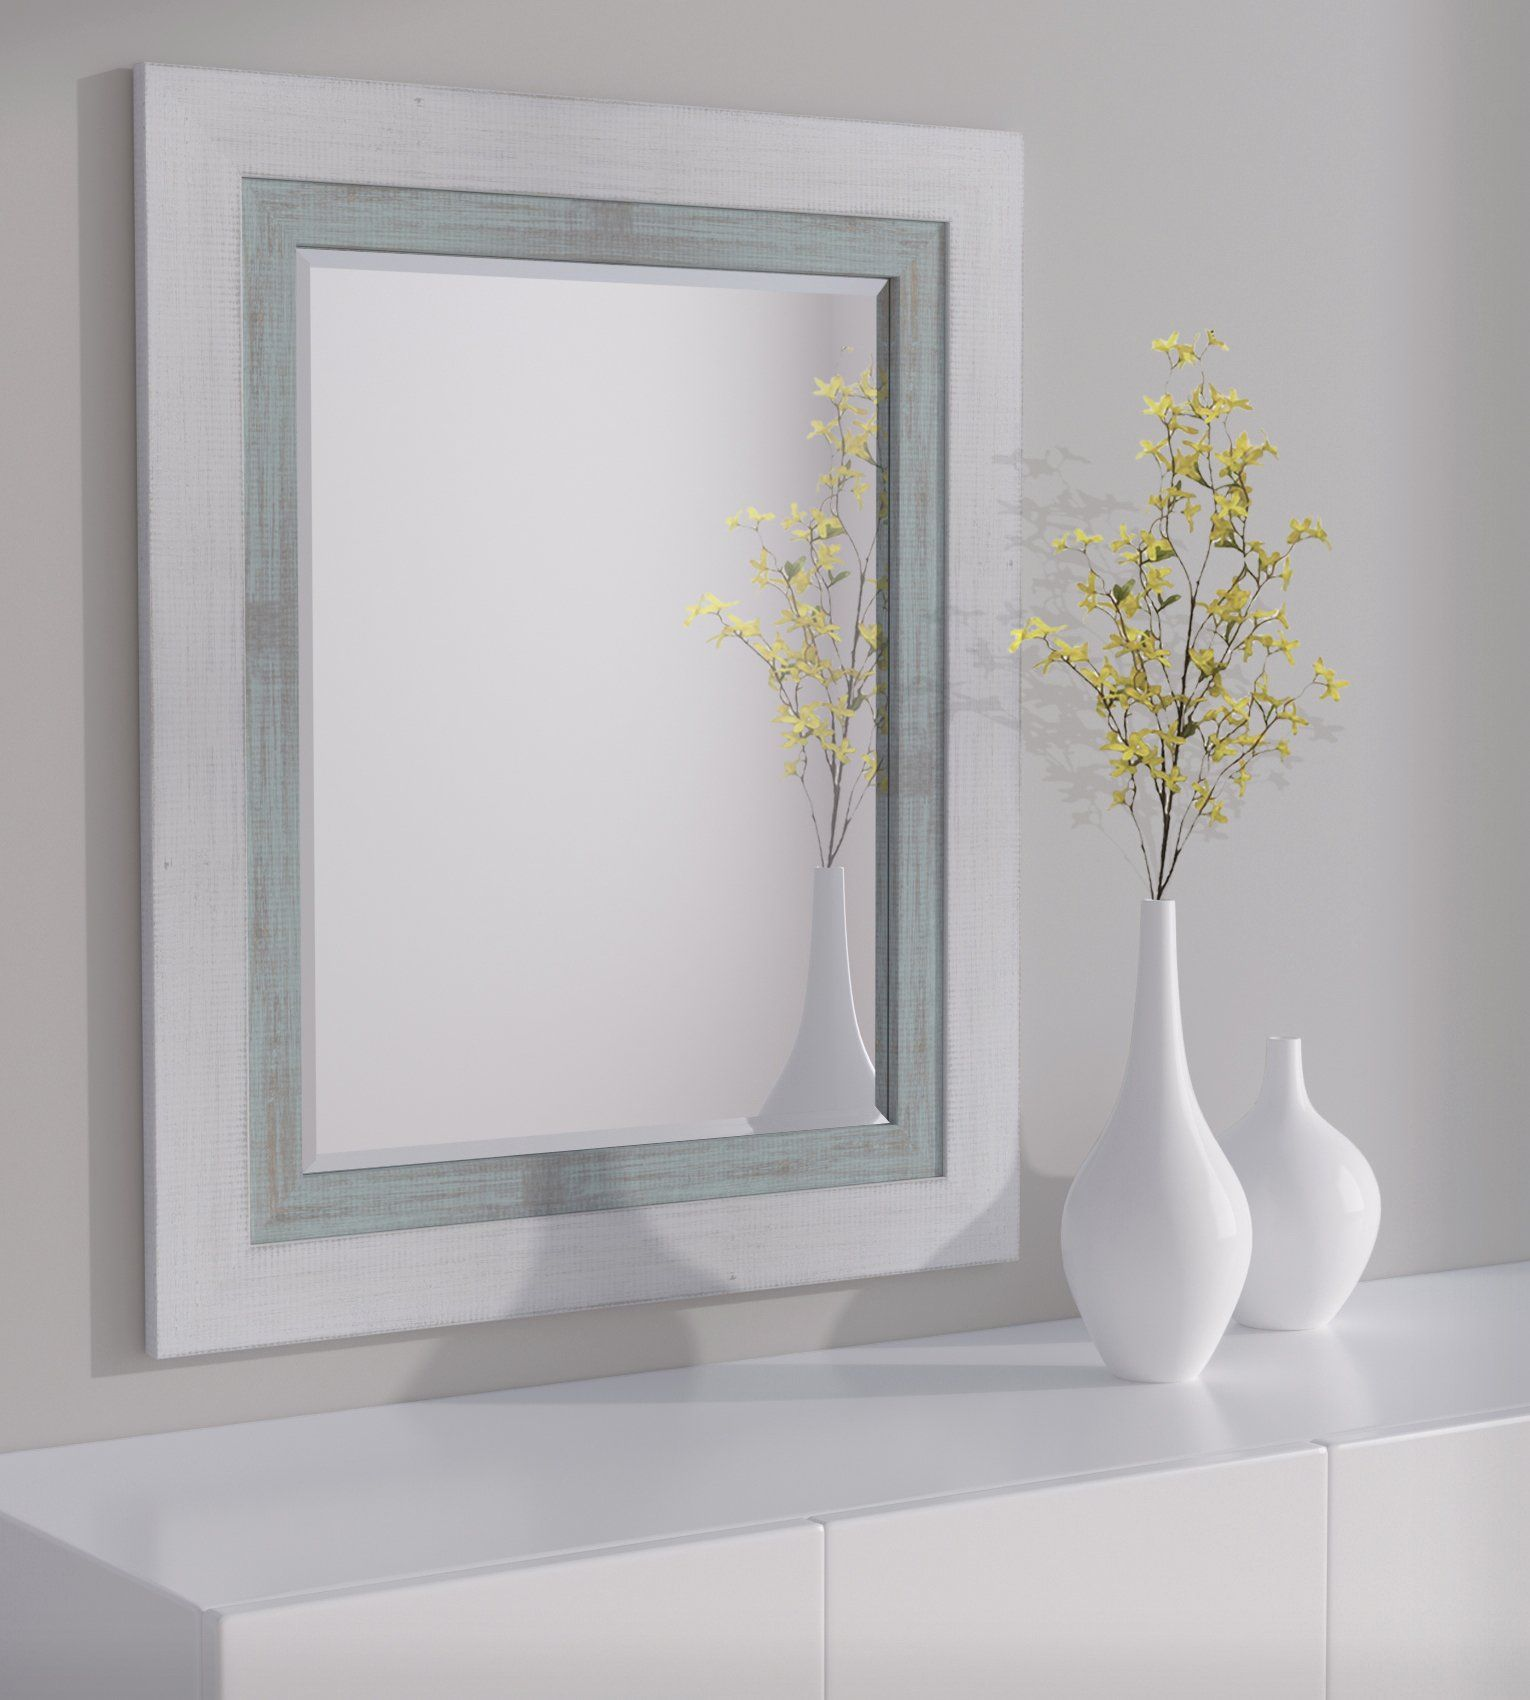 Lnd Reflections Framed Beveled Mirror 30 X36 Or 32 X44